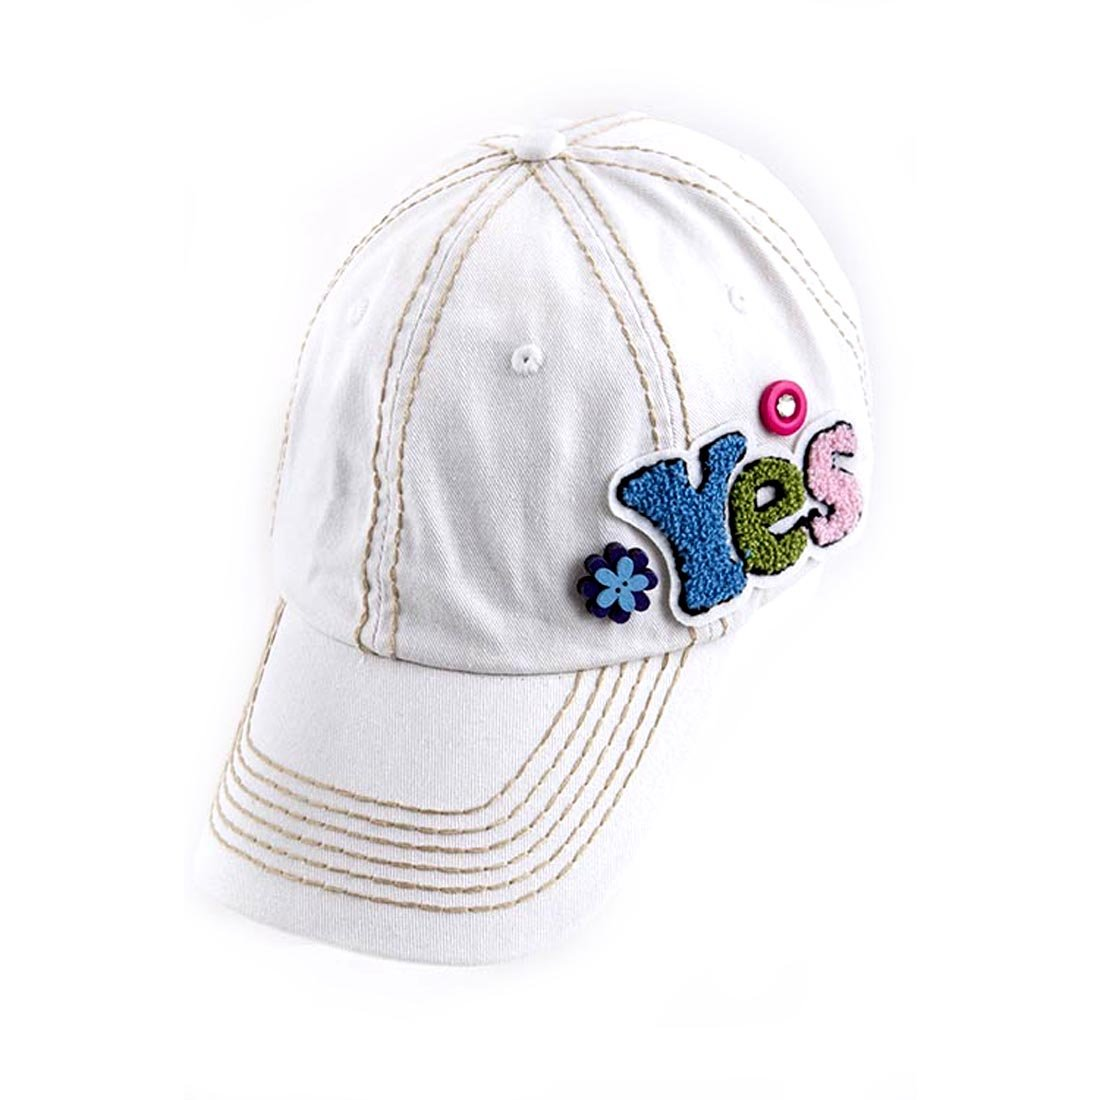 Washed White Denim Baseball Cap Hat w Fuzzy YES Accent   Thick Tan  Stitching at Amazon Women s Clothing store  b84d9105cdf